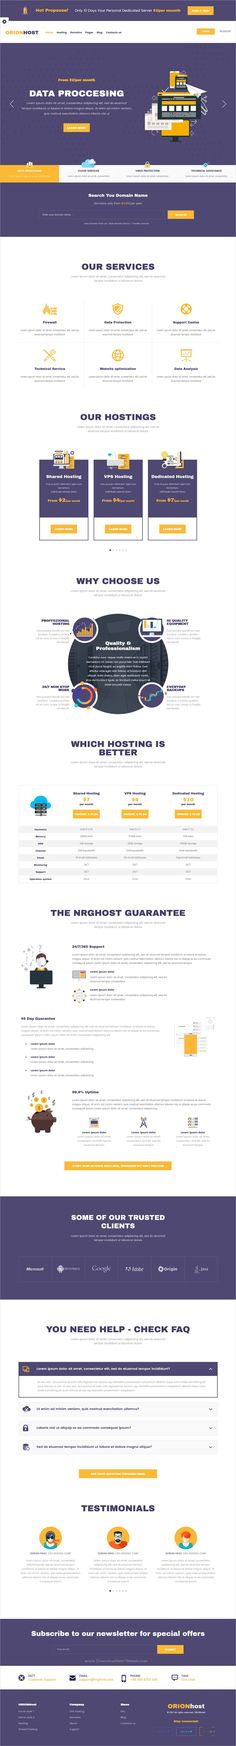 OrionHost is clean and unique design 2in1 responsive #WordPress theme for web #hosting and #domain registration business website download now➩ https://themeforest.net/item/orionhost-web-hosting-domain-technology-responsive-wp-theme/19302075?ref=Datasata